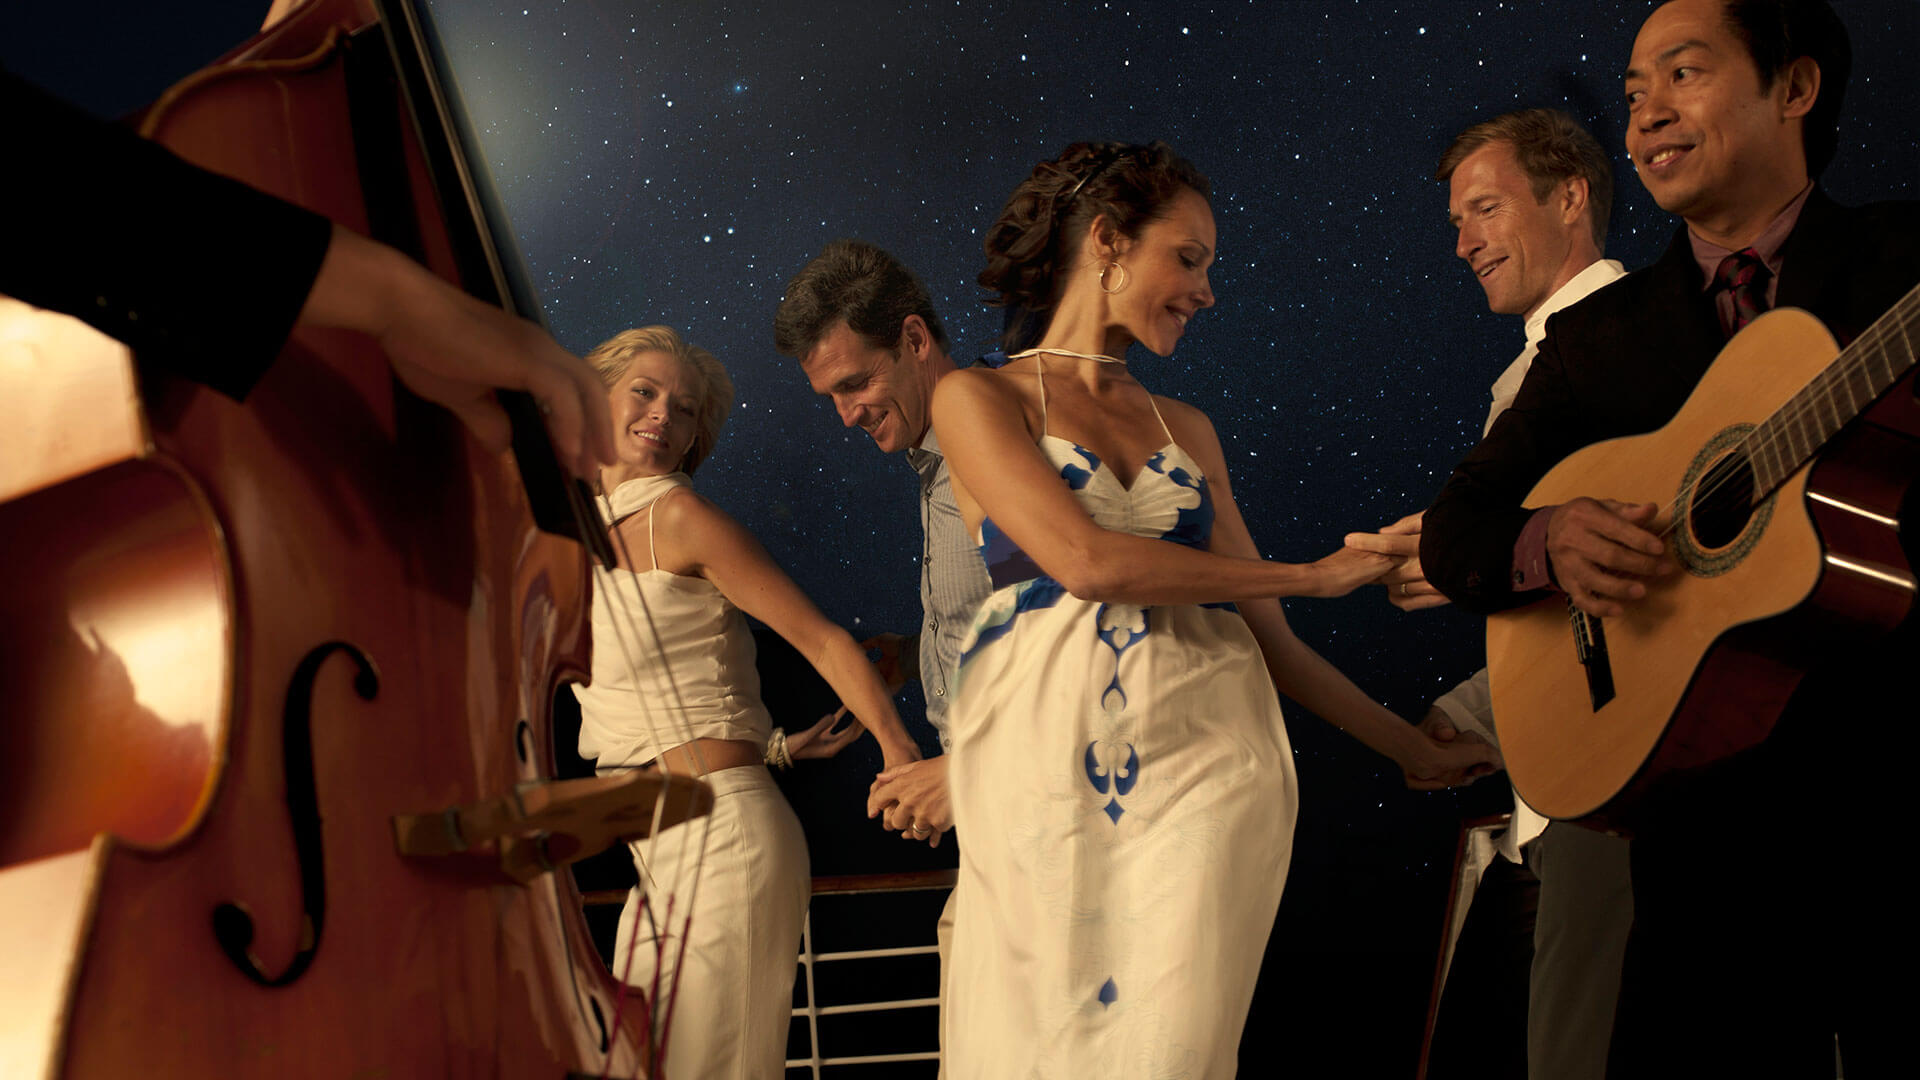 Seabourn Encore Exterior Evening Under The Stars.jpg